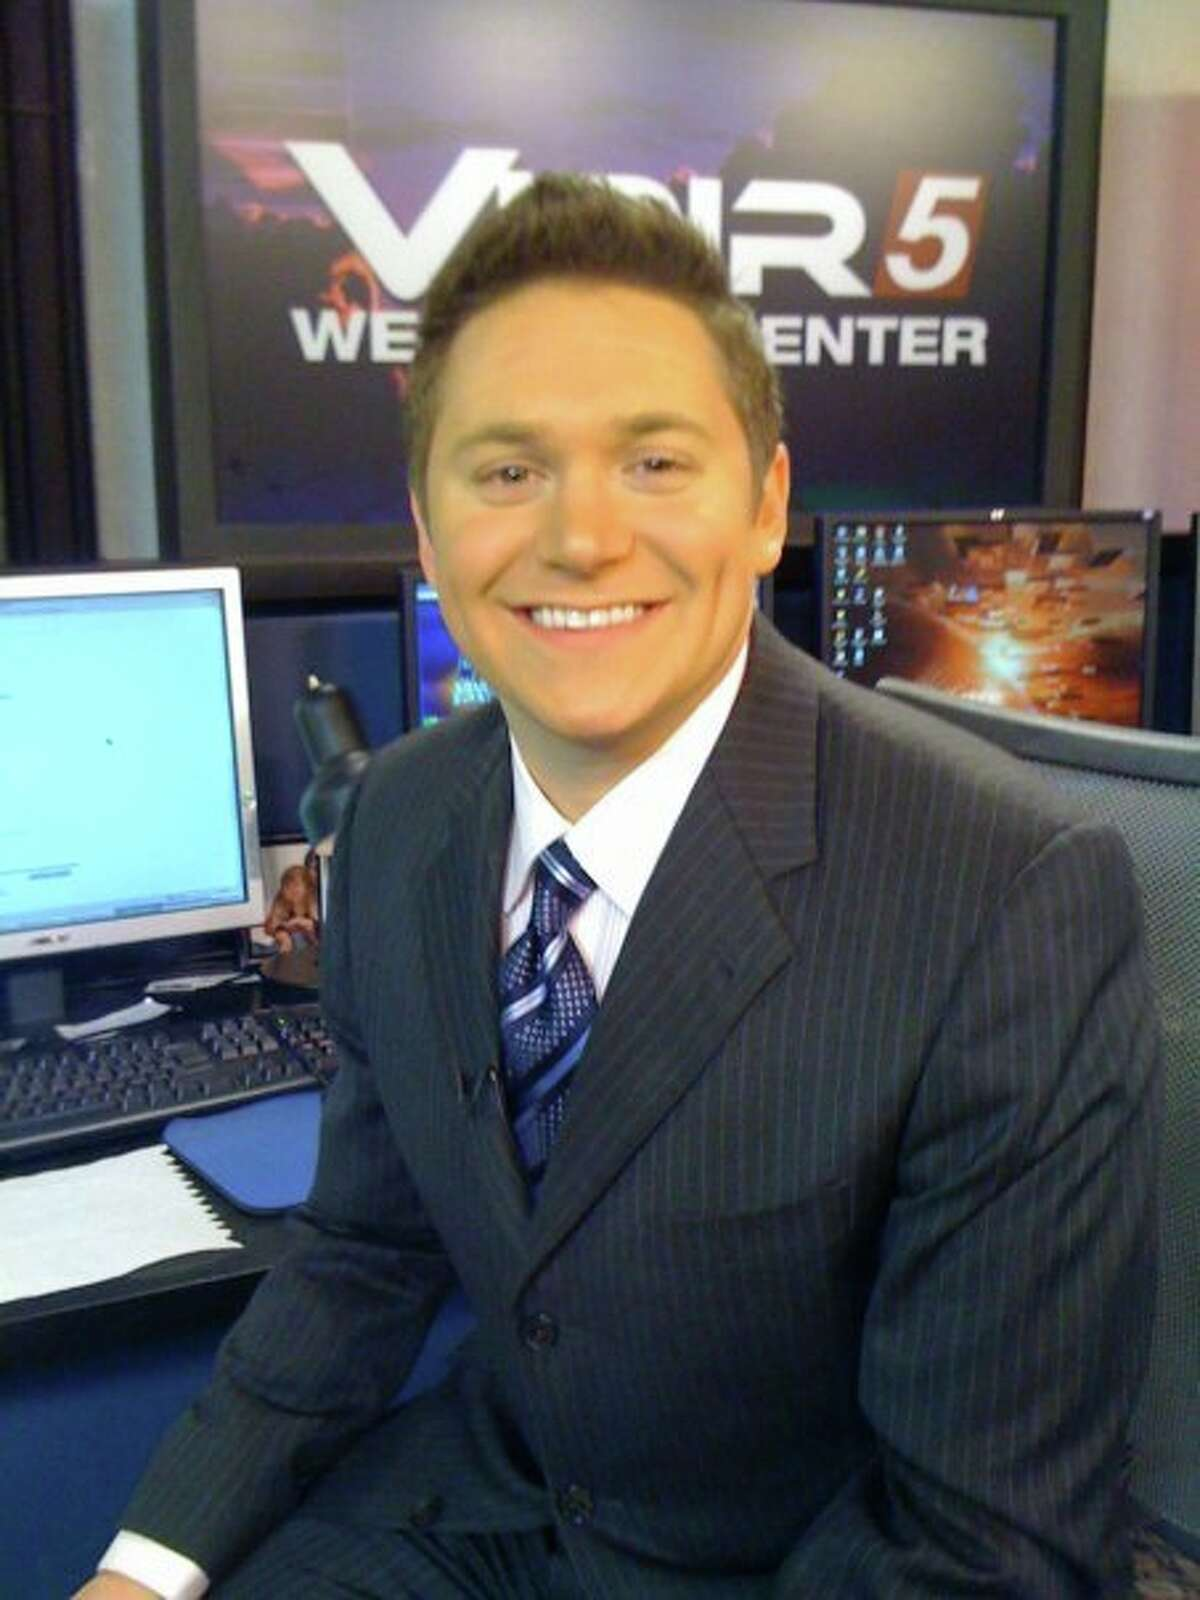 After 13 years at KENS 5, meteorologist Jared Silverman has said goodbye to the weather seat.